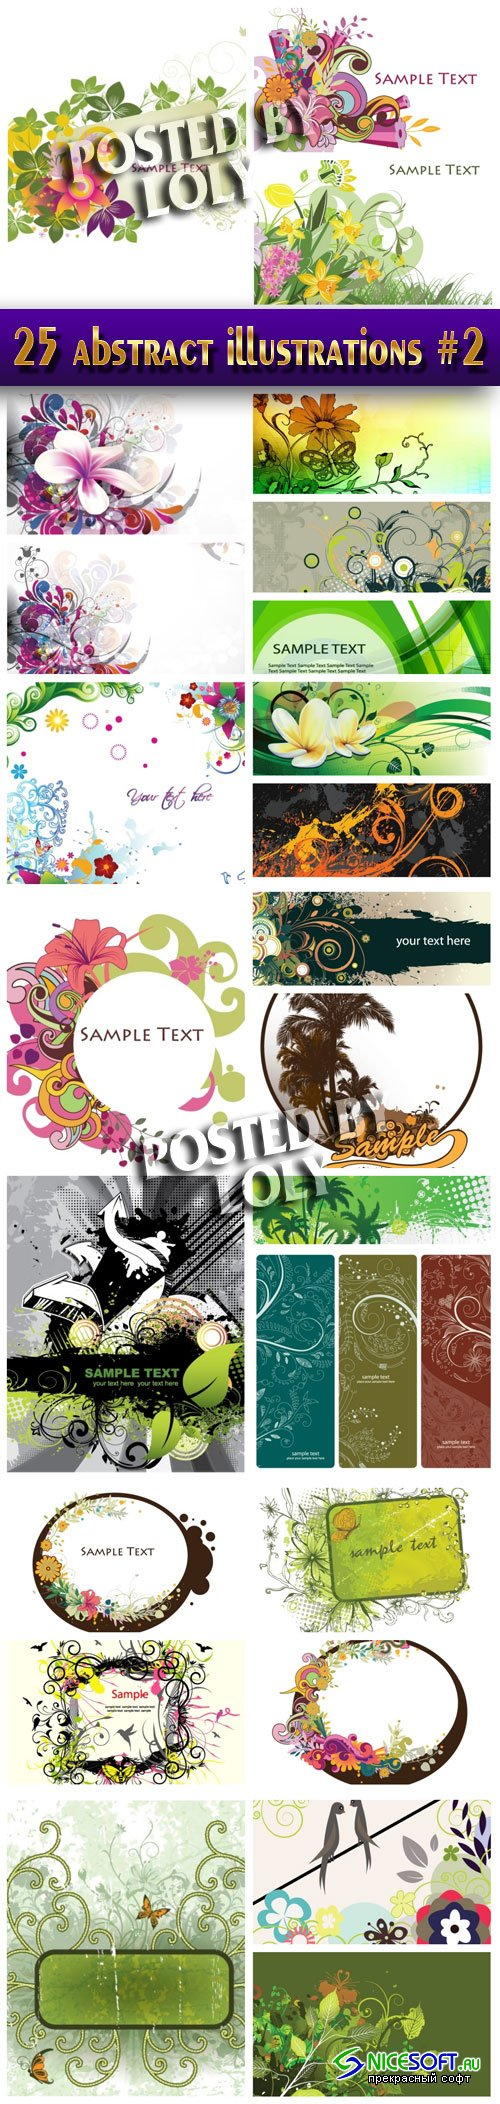 25 abstract illustrations V2 - Stock Vector